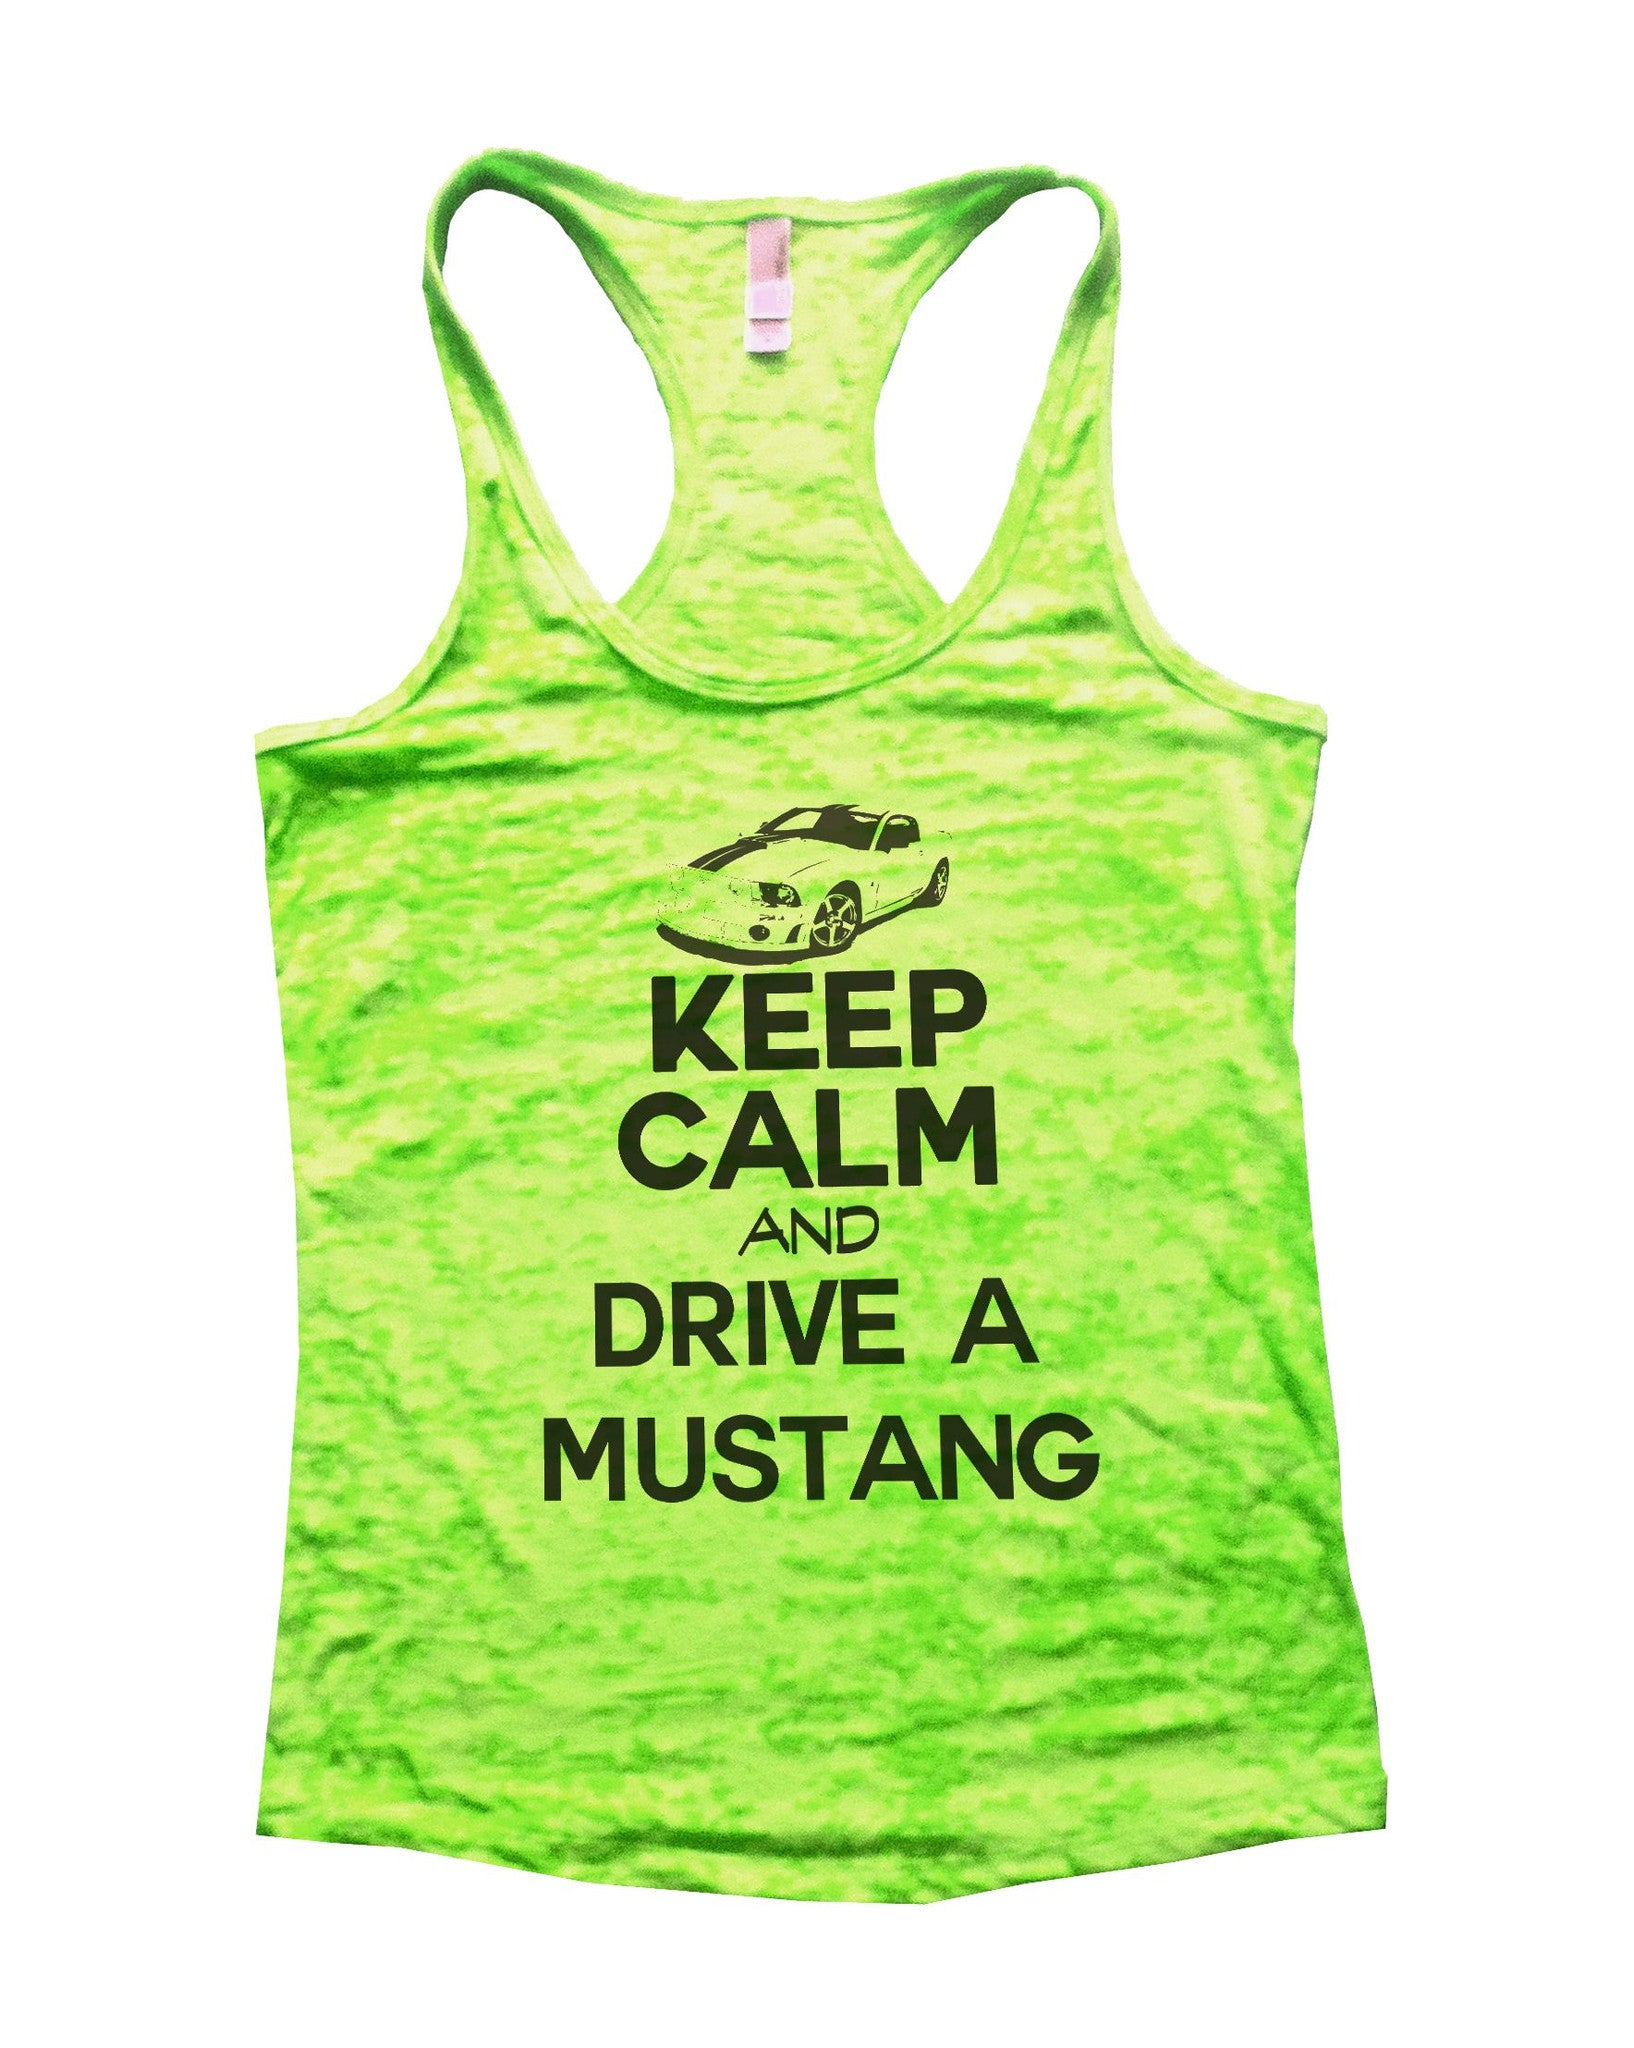 Keep Calm And Drive A Mustang Burnout Tank Top By BurnoutTankTops.com - 739 - Funny Shirts Tank Tops Burnouts and Triblends  - 2